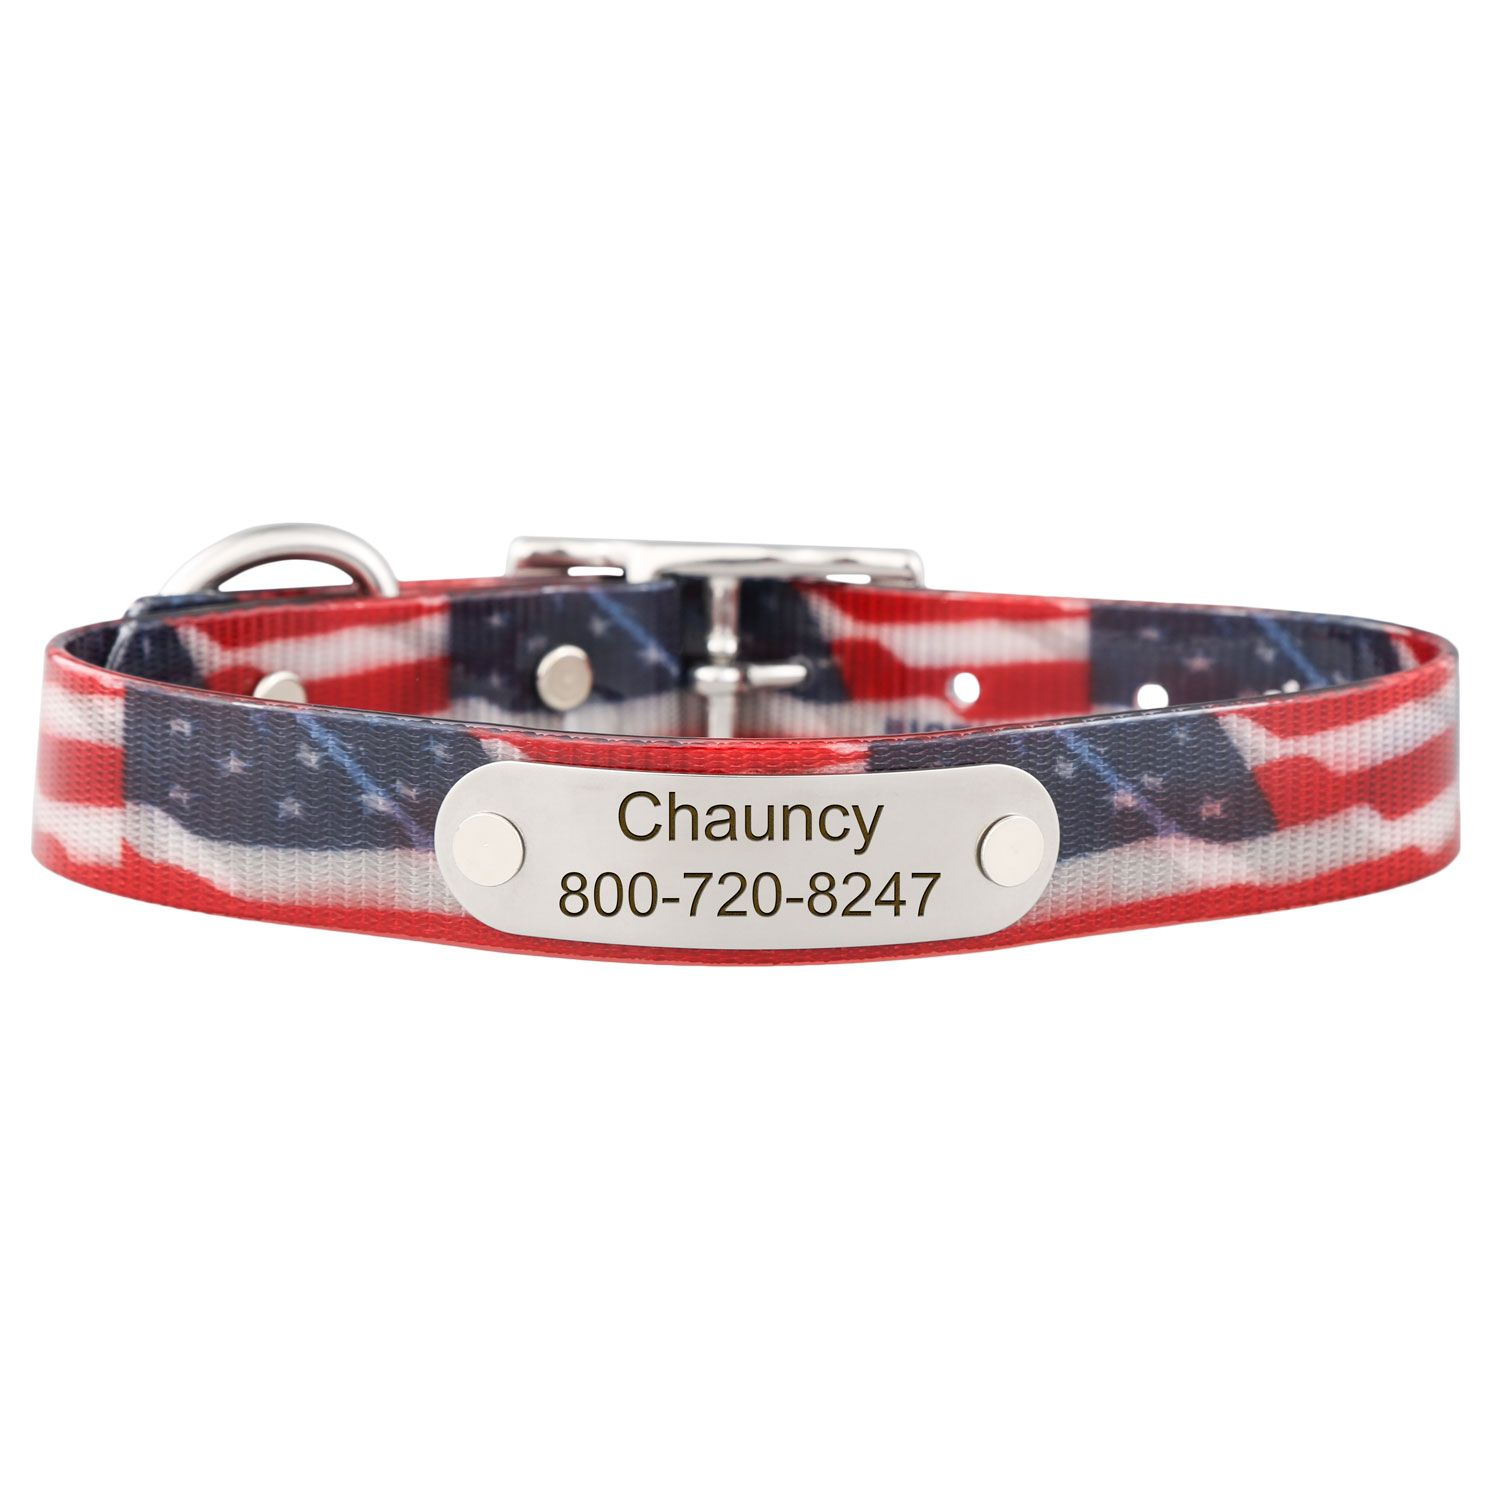 Waterproof Dog Collars Quality Gear For Active Pets Flag Dog Collar Waterproof Dog Collar Dog Collar